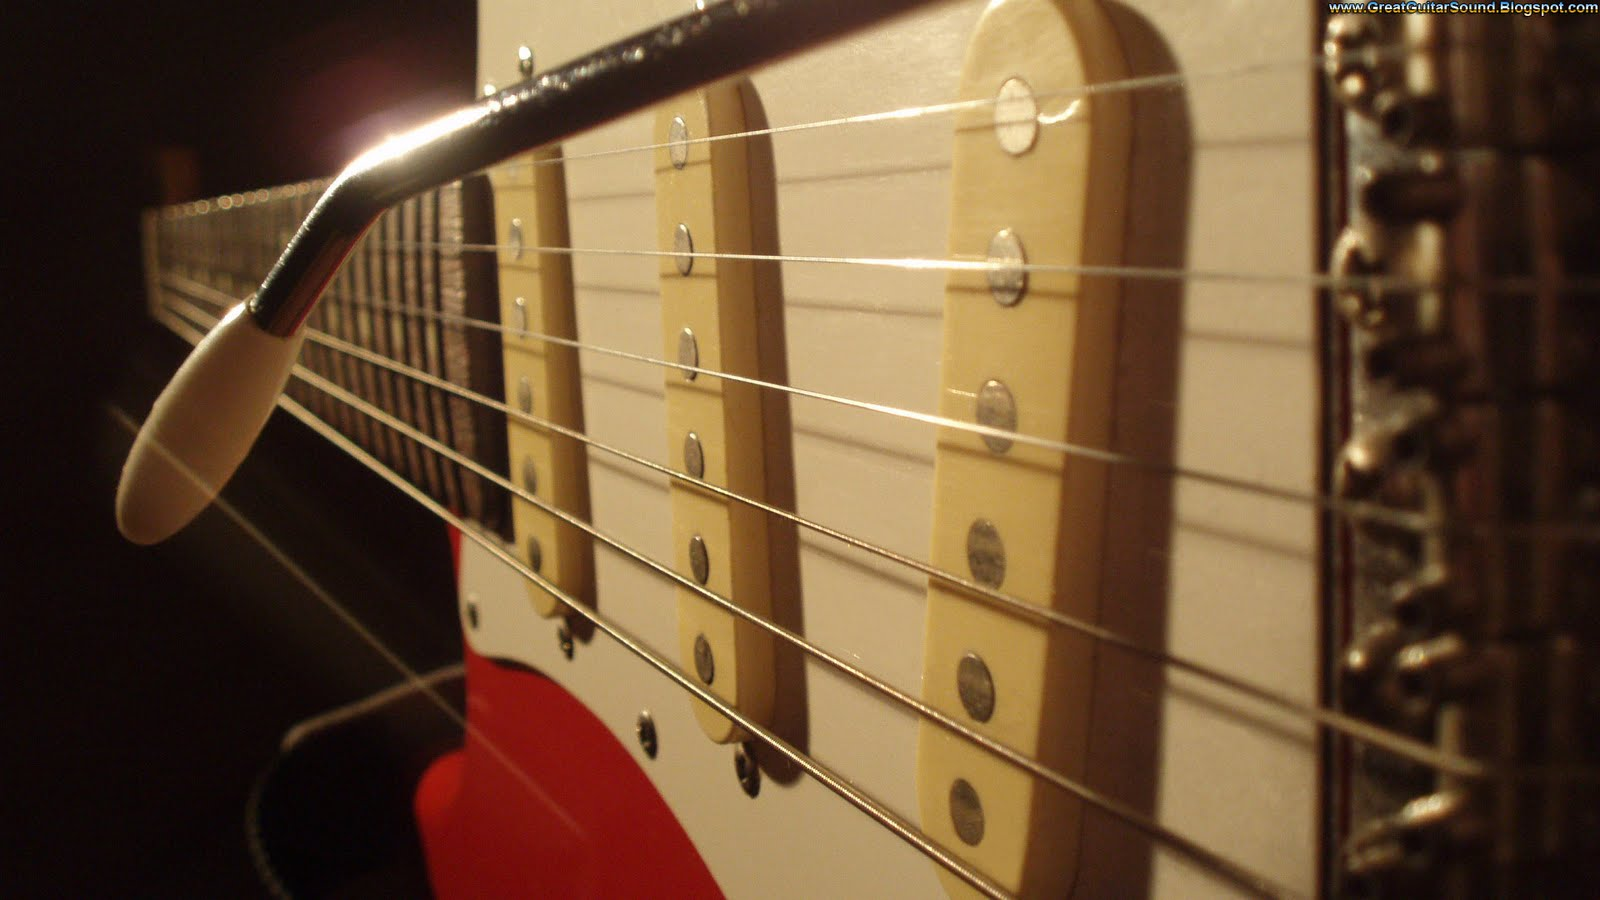 Red Fender Stratocaster Electric Guitar Bridge Pickups Whammy Bar Fretboard Music Desktop HD Wallpaper 1920x1080